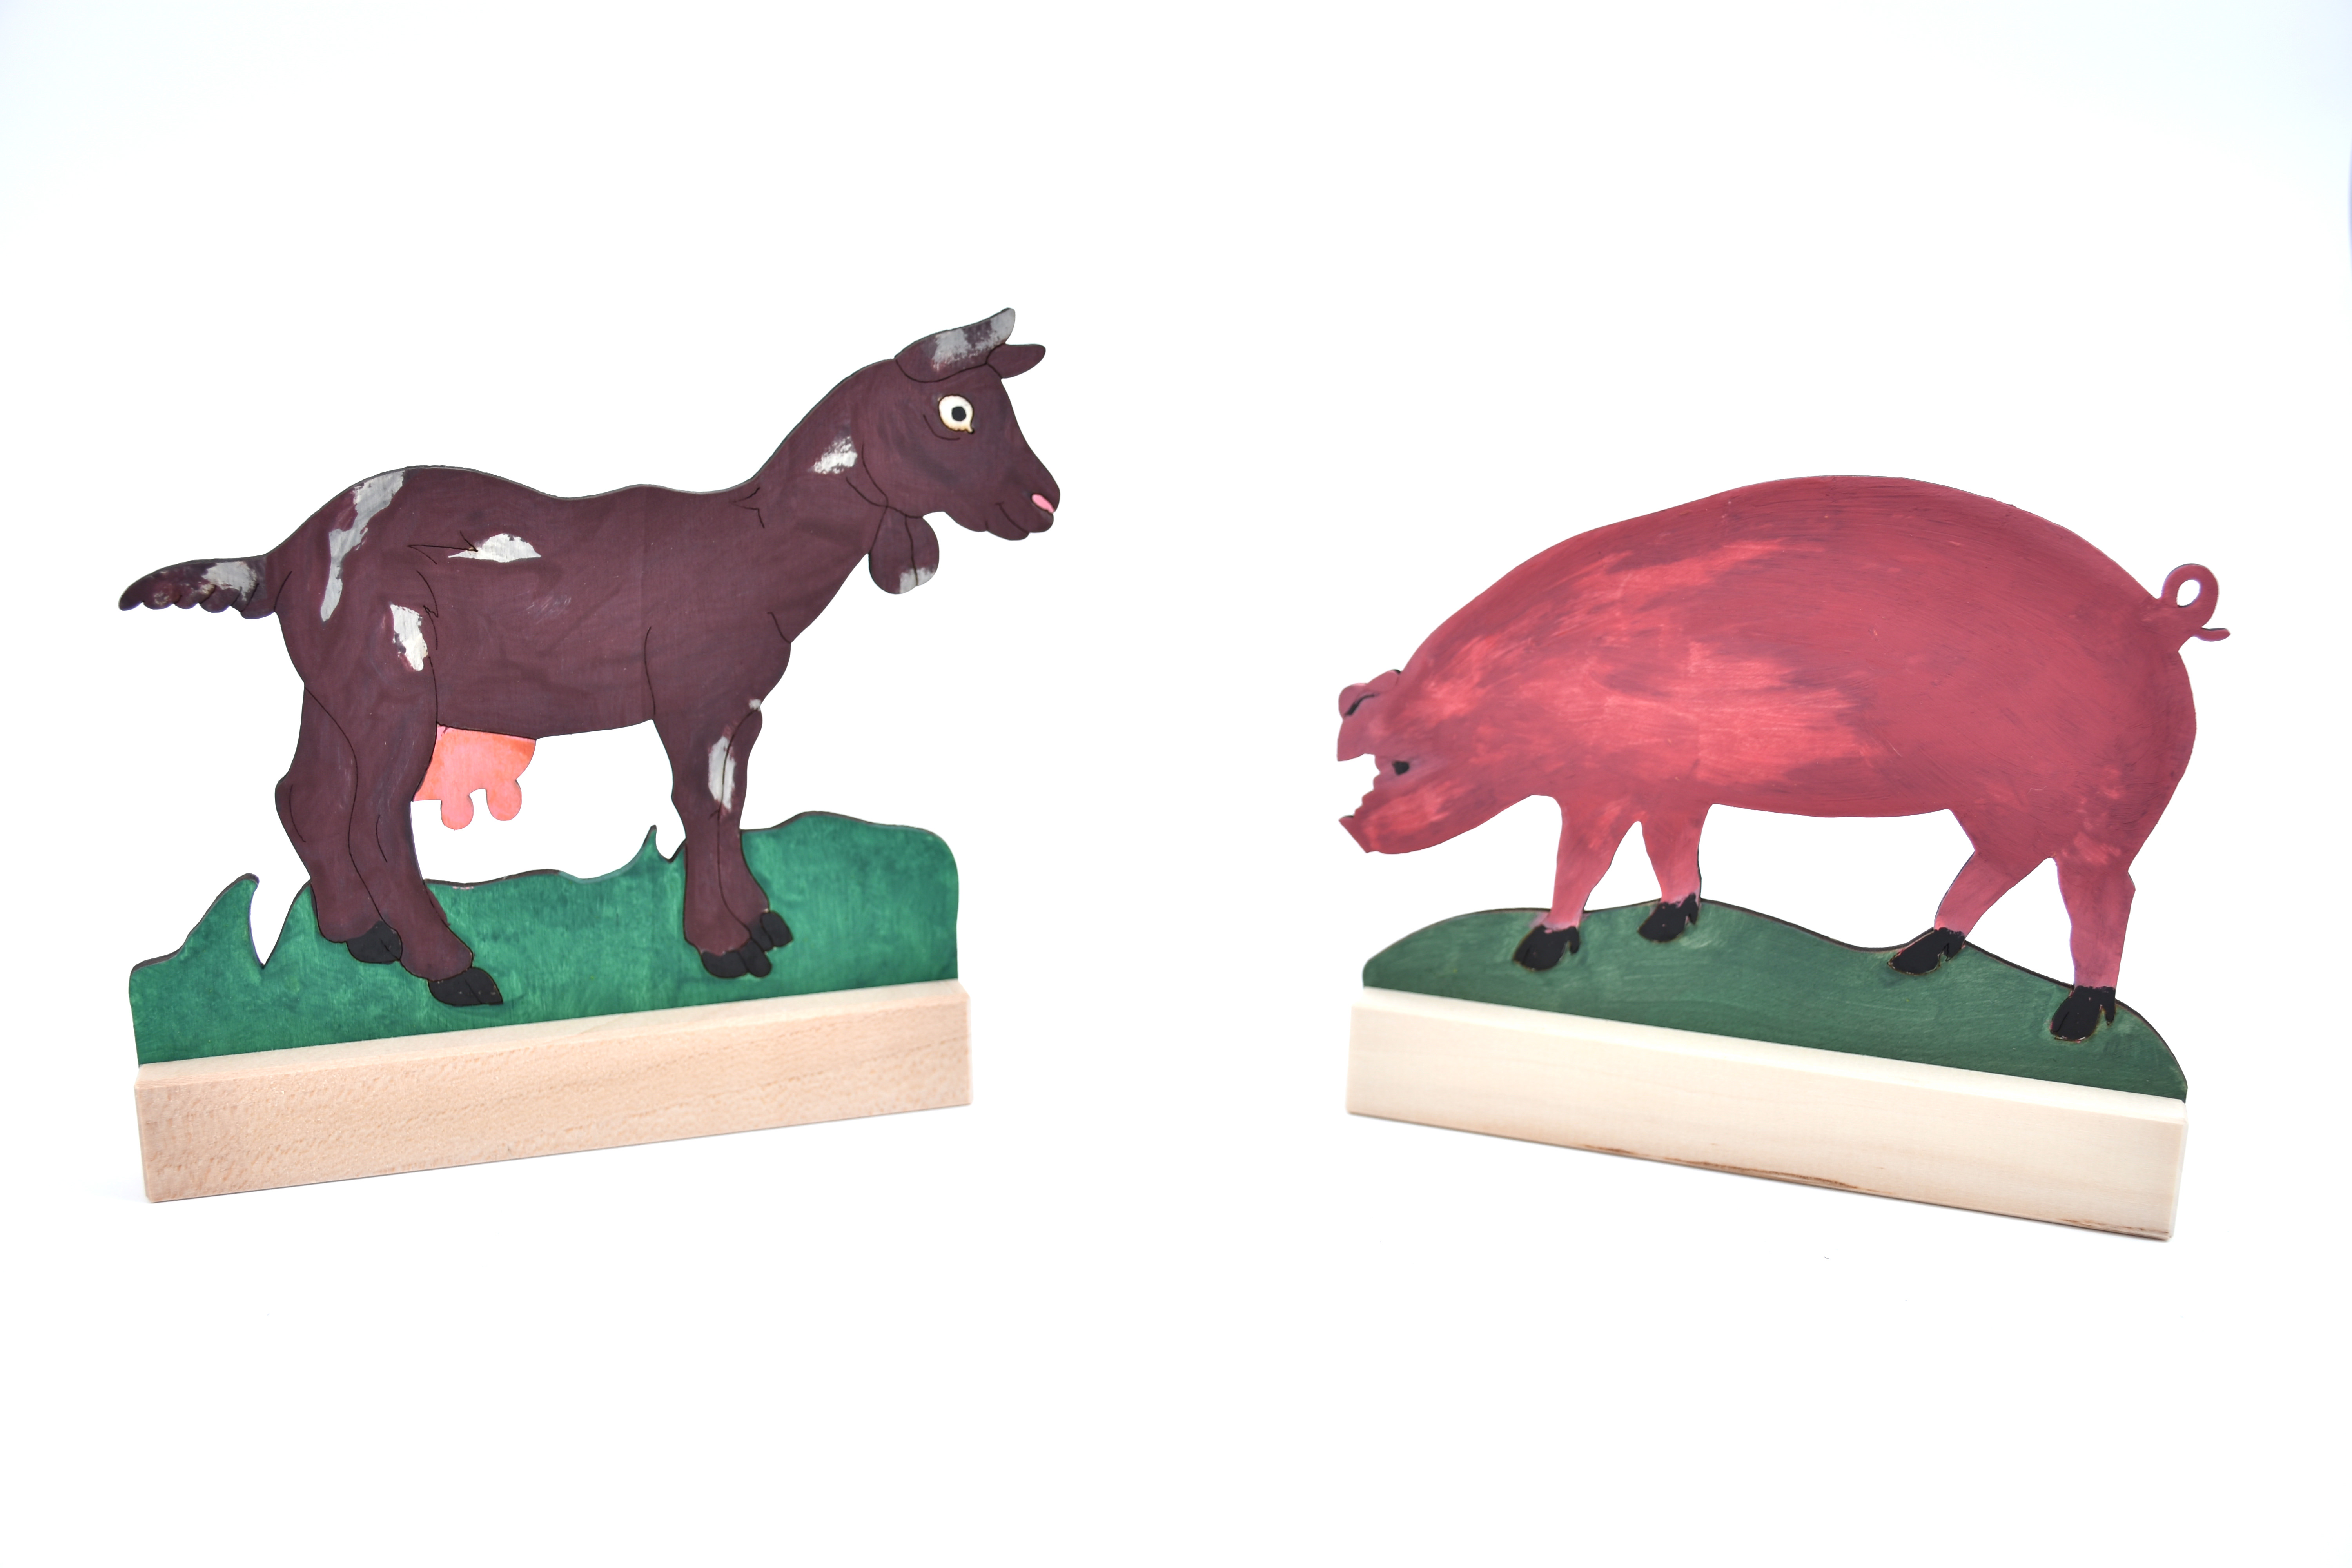 Goat and pig figure coloured